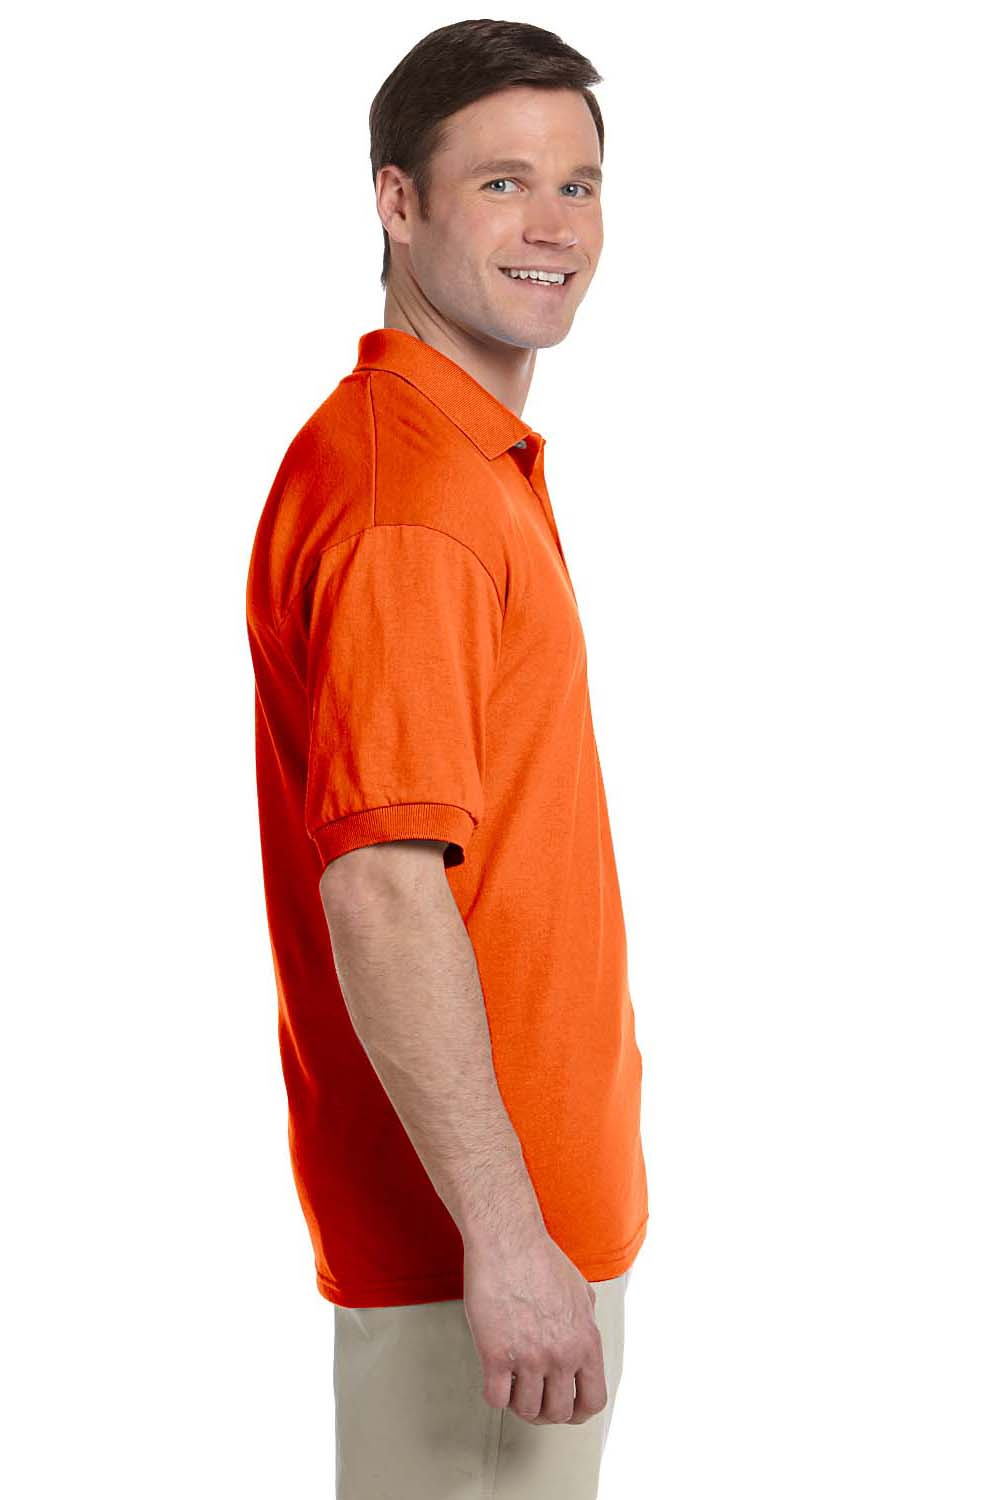 Gildan G880 Mens DryBlend Moisture Wicking Short Sleeve Polo Shirt Orange Side